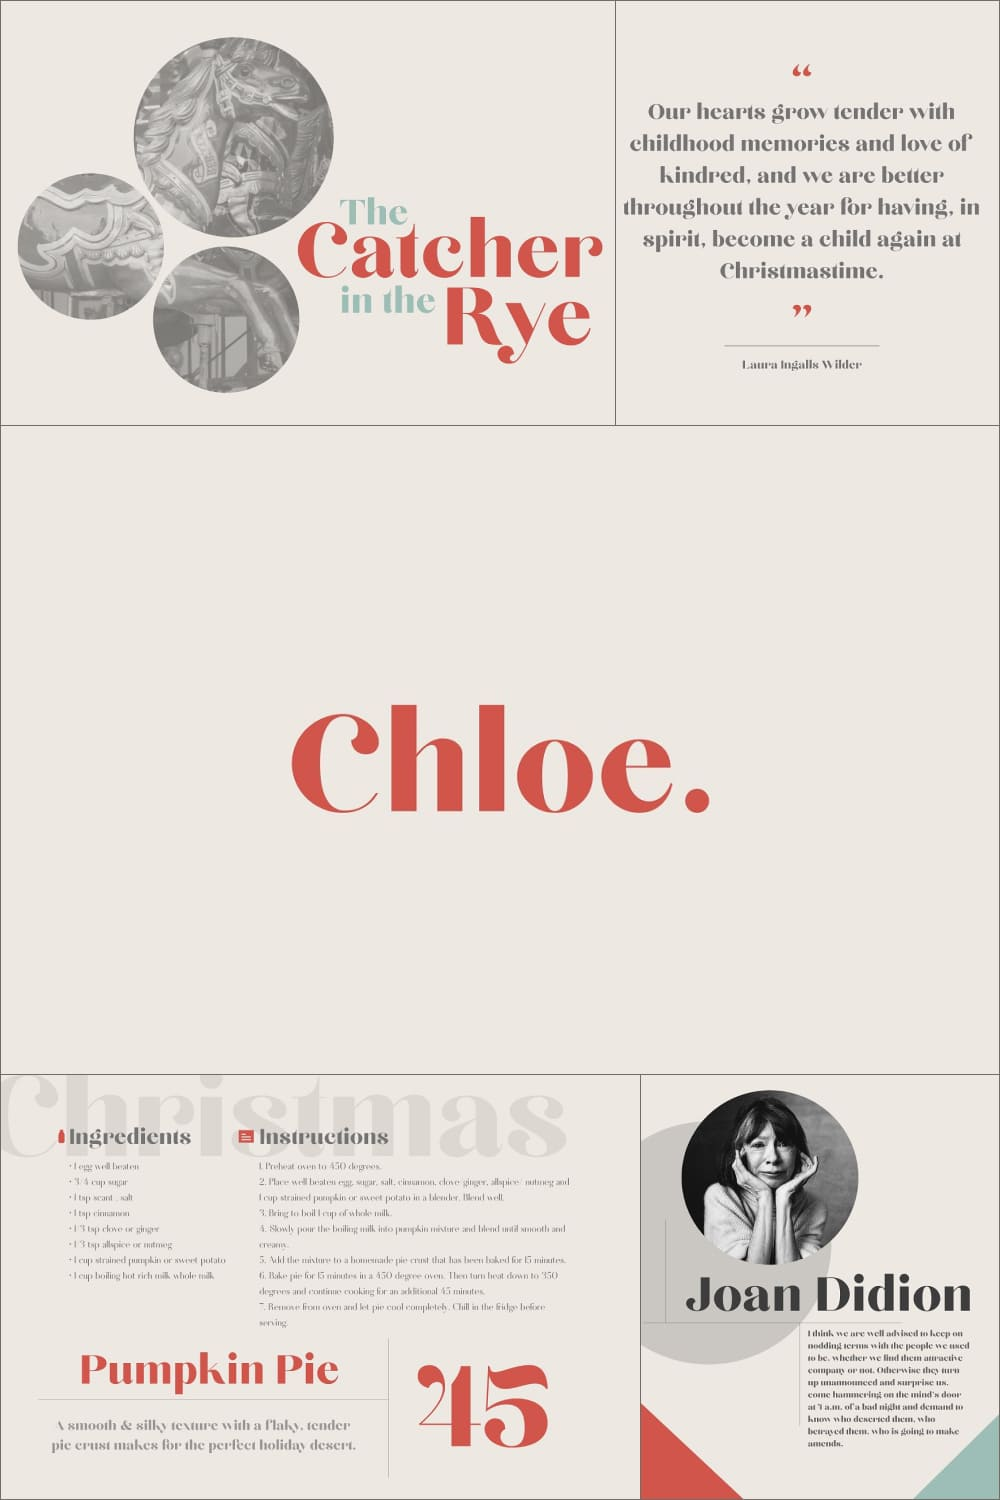 Create bold, gorgeous headlines and elegant designs with a vintage flair.